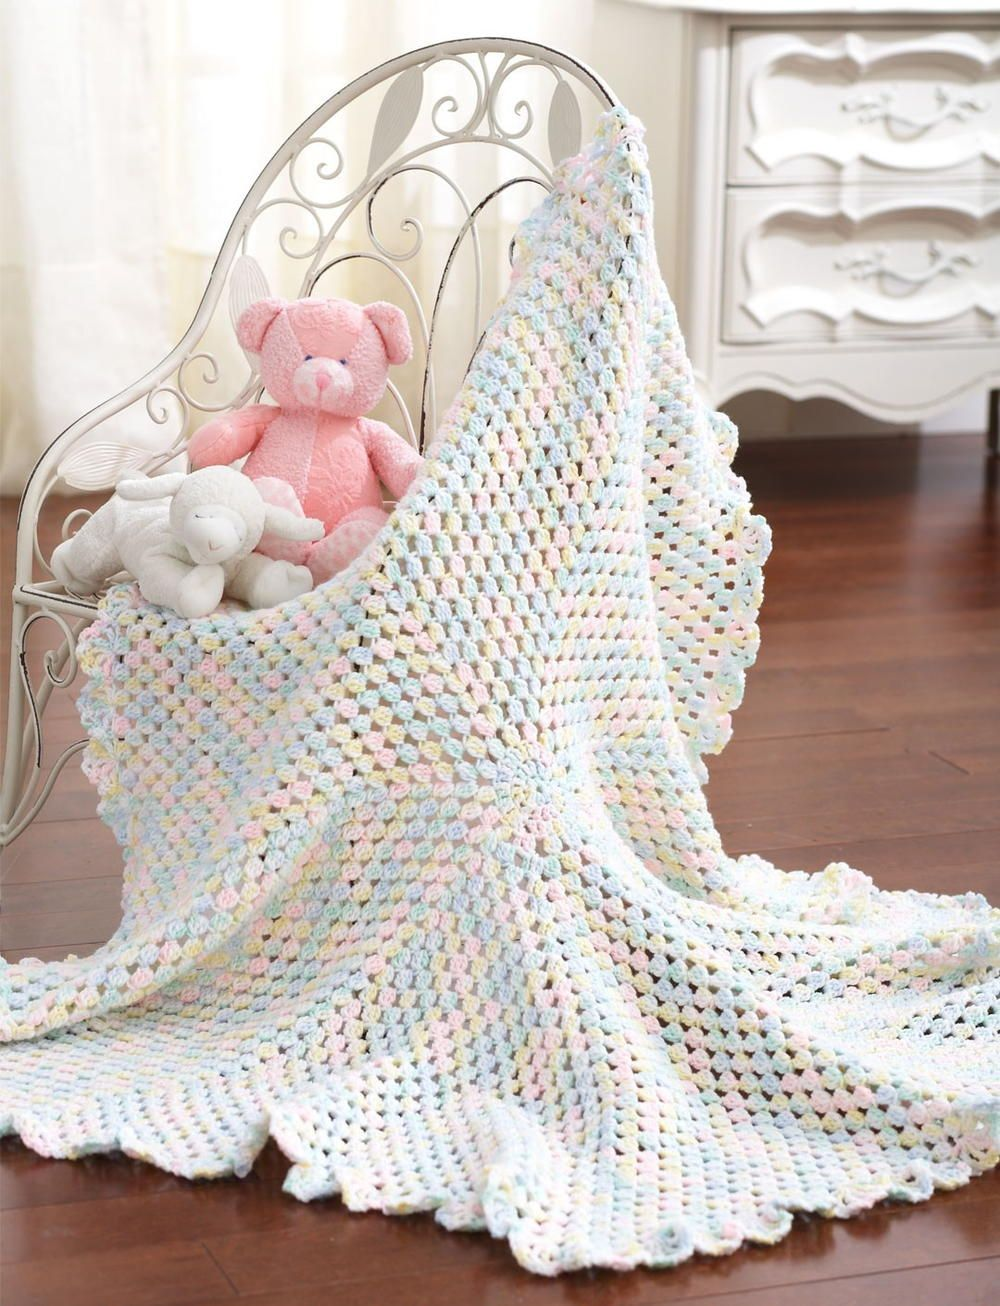 Pin by Marea Yagow on Crochet Project Ideas | Pinterest | Crochet ...